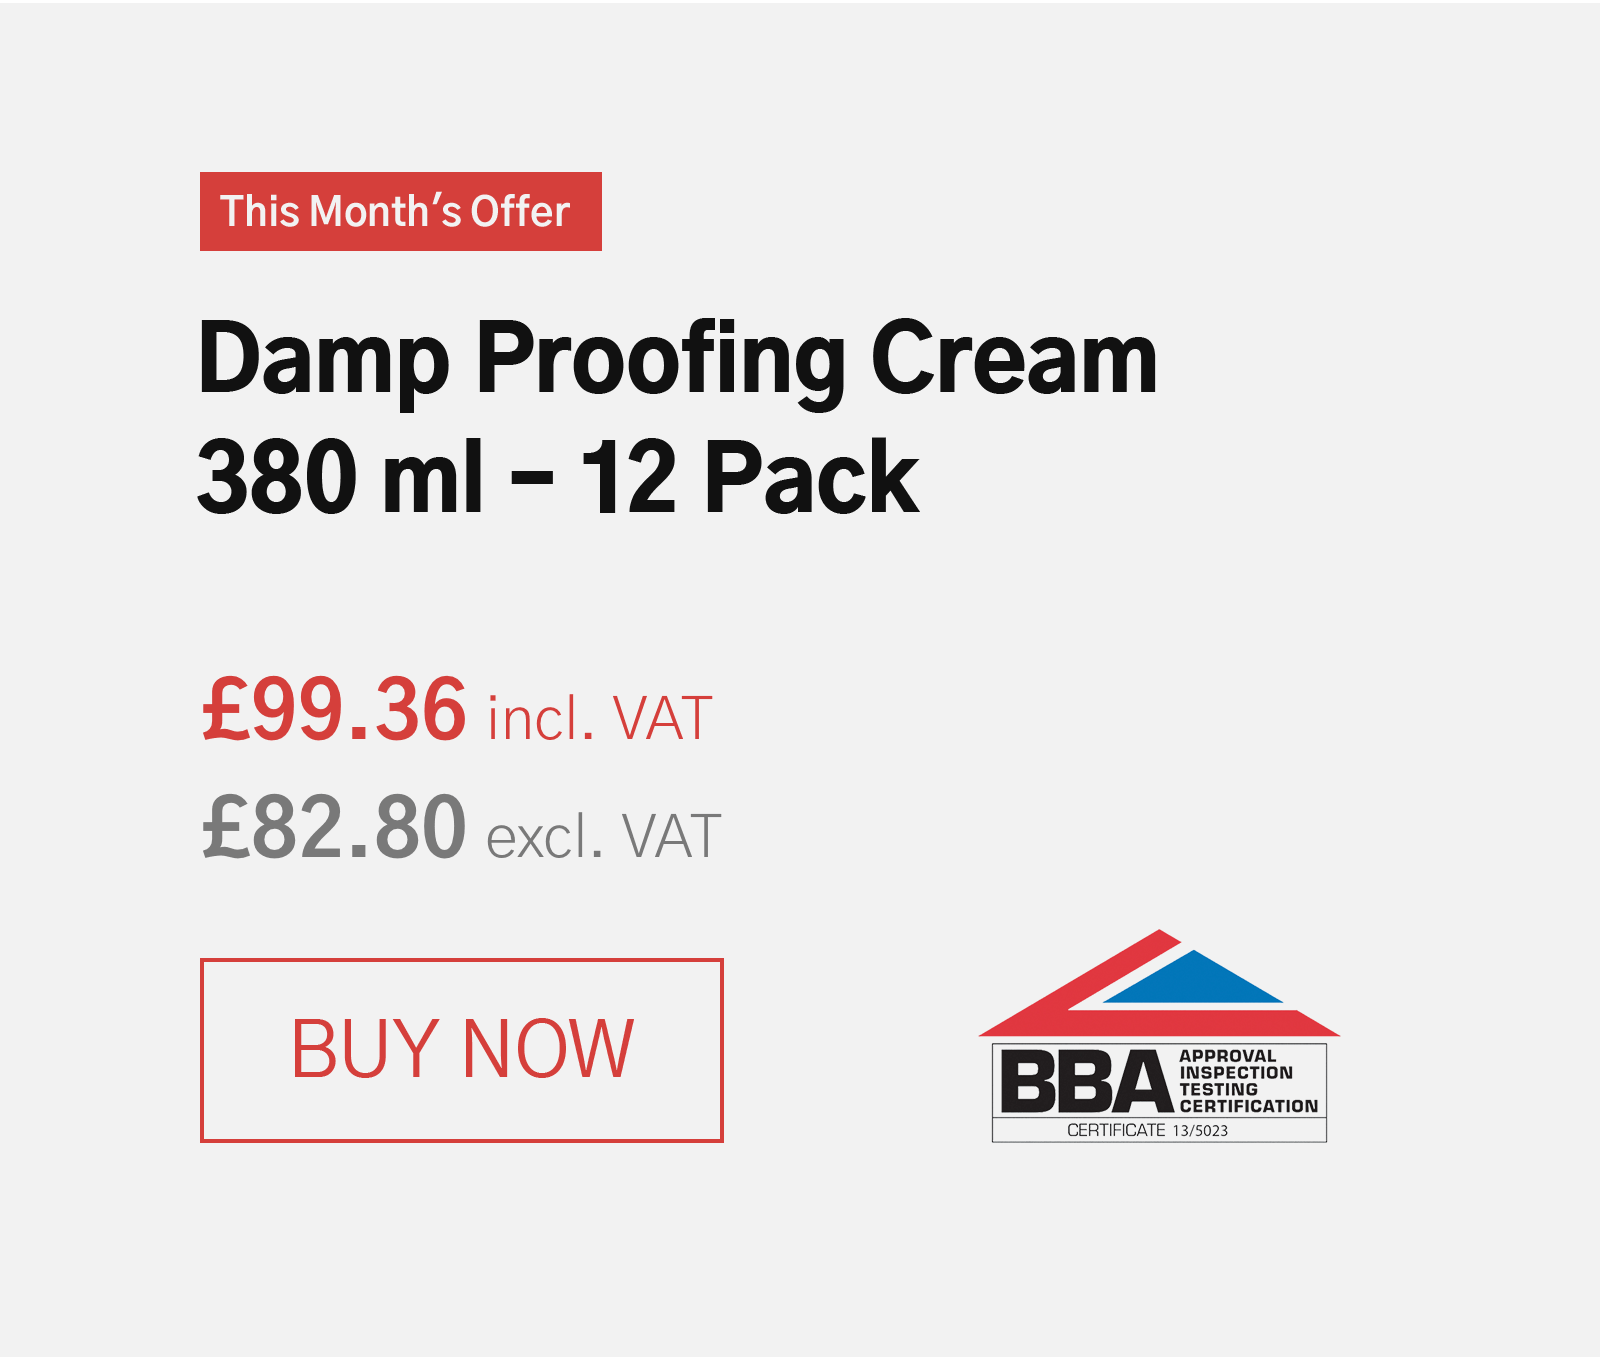 Damp Proofing Cream - 380 12 Pack